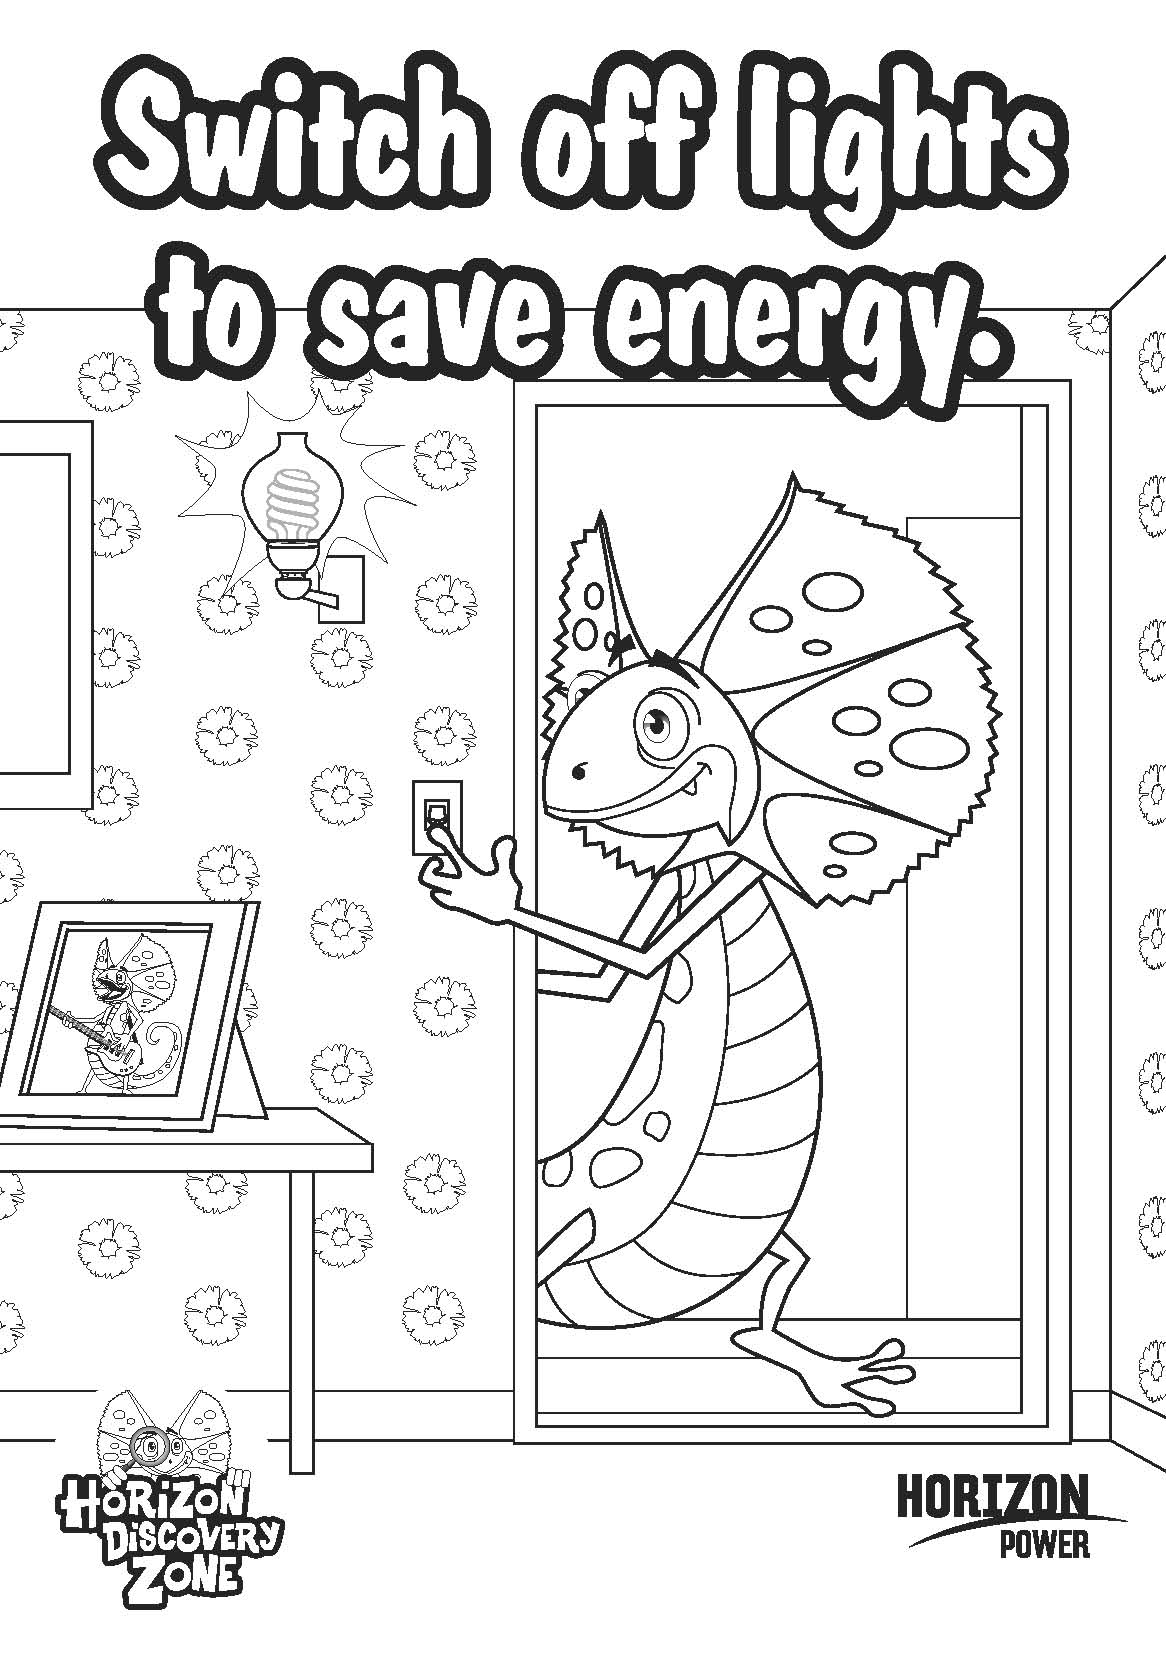 Electricity coloring #1, Download drawings